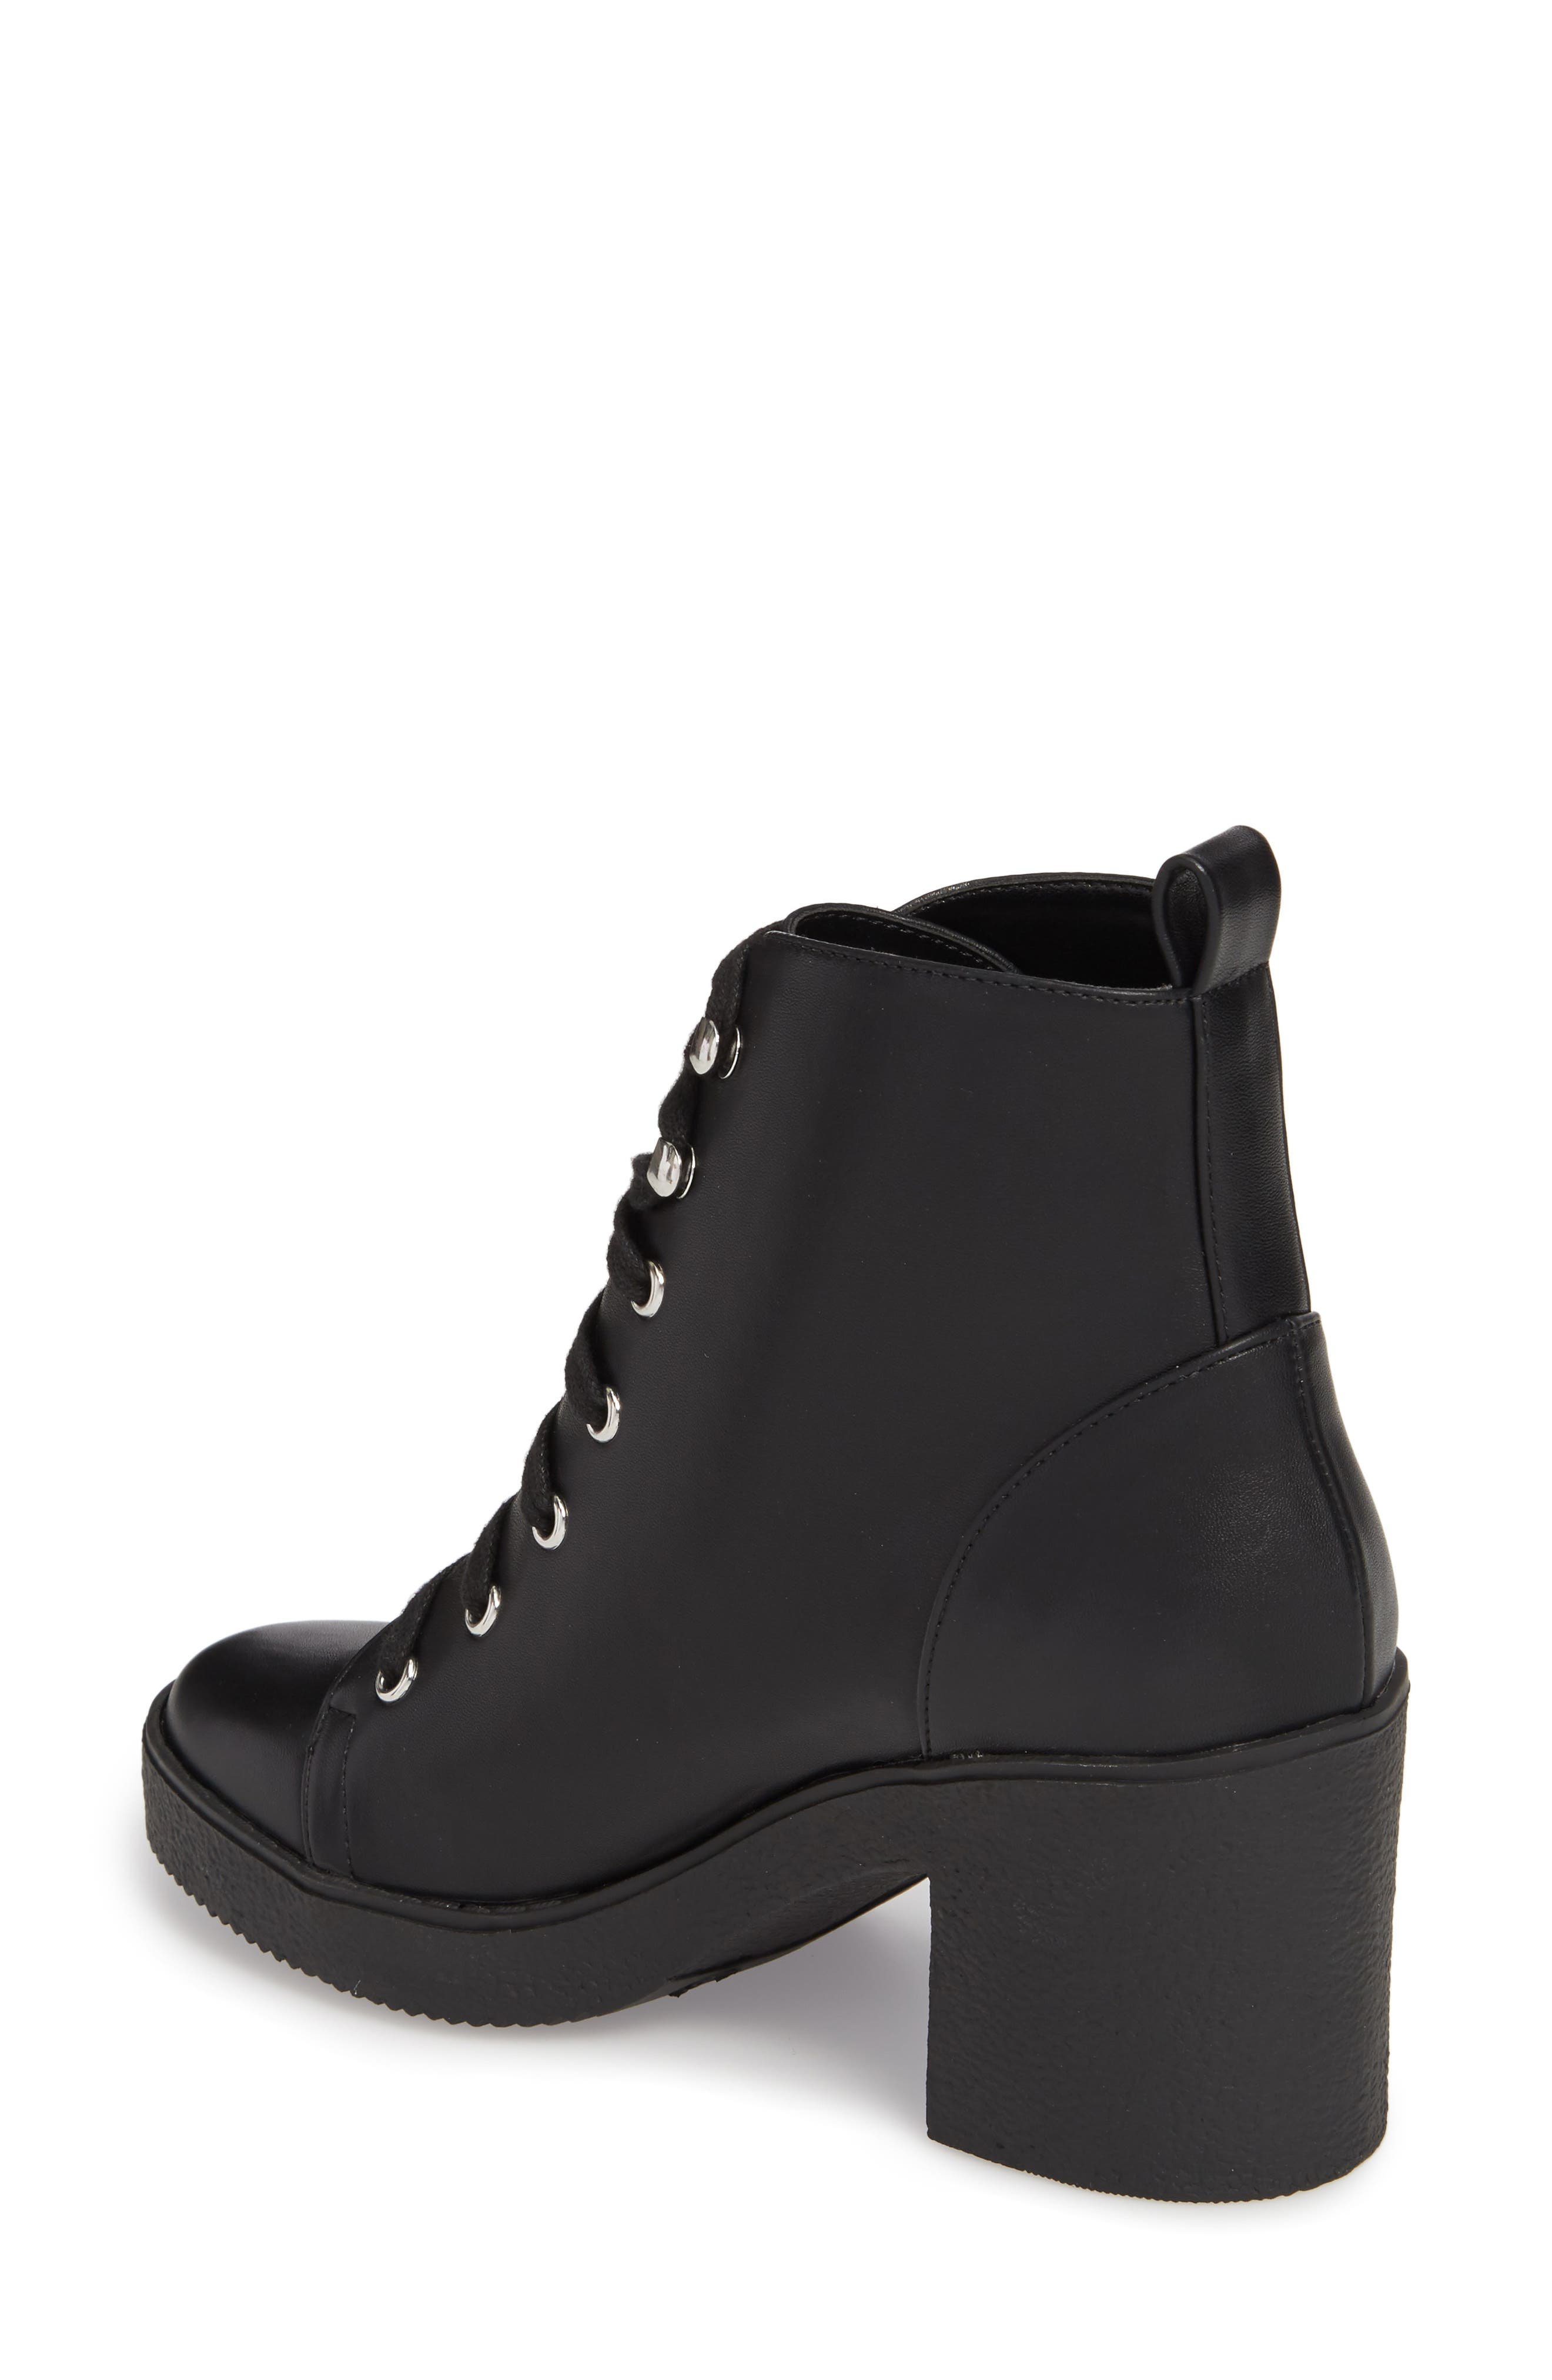 Abby Lace-Up Bootie,                             Alternate thumbnail 2, color,                             002